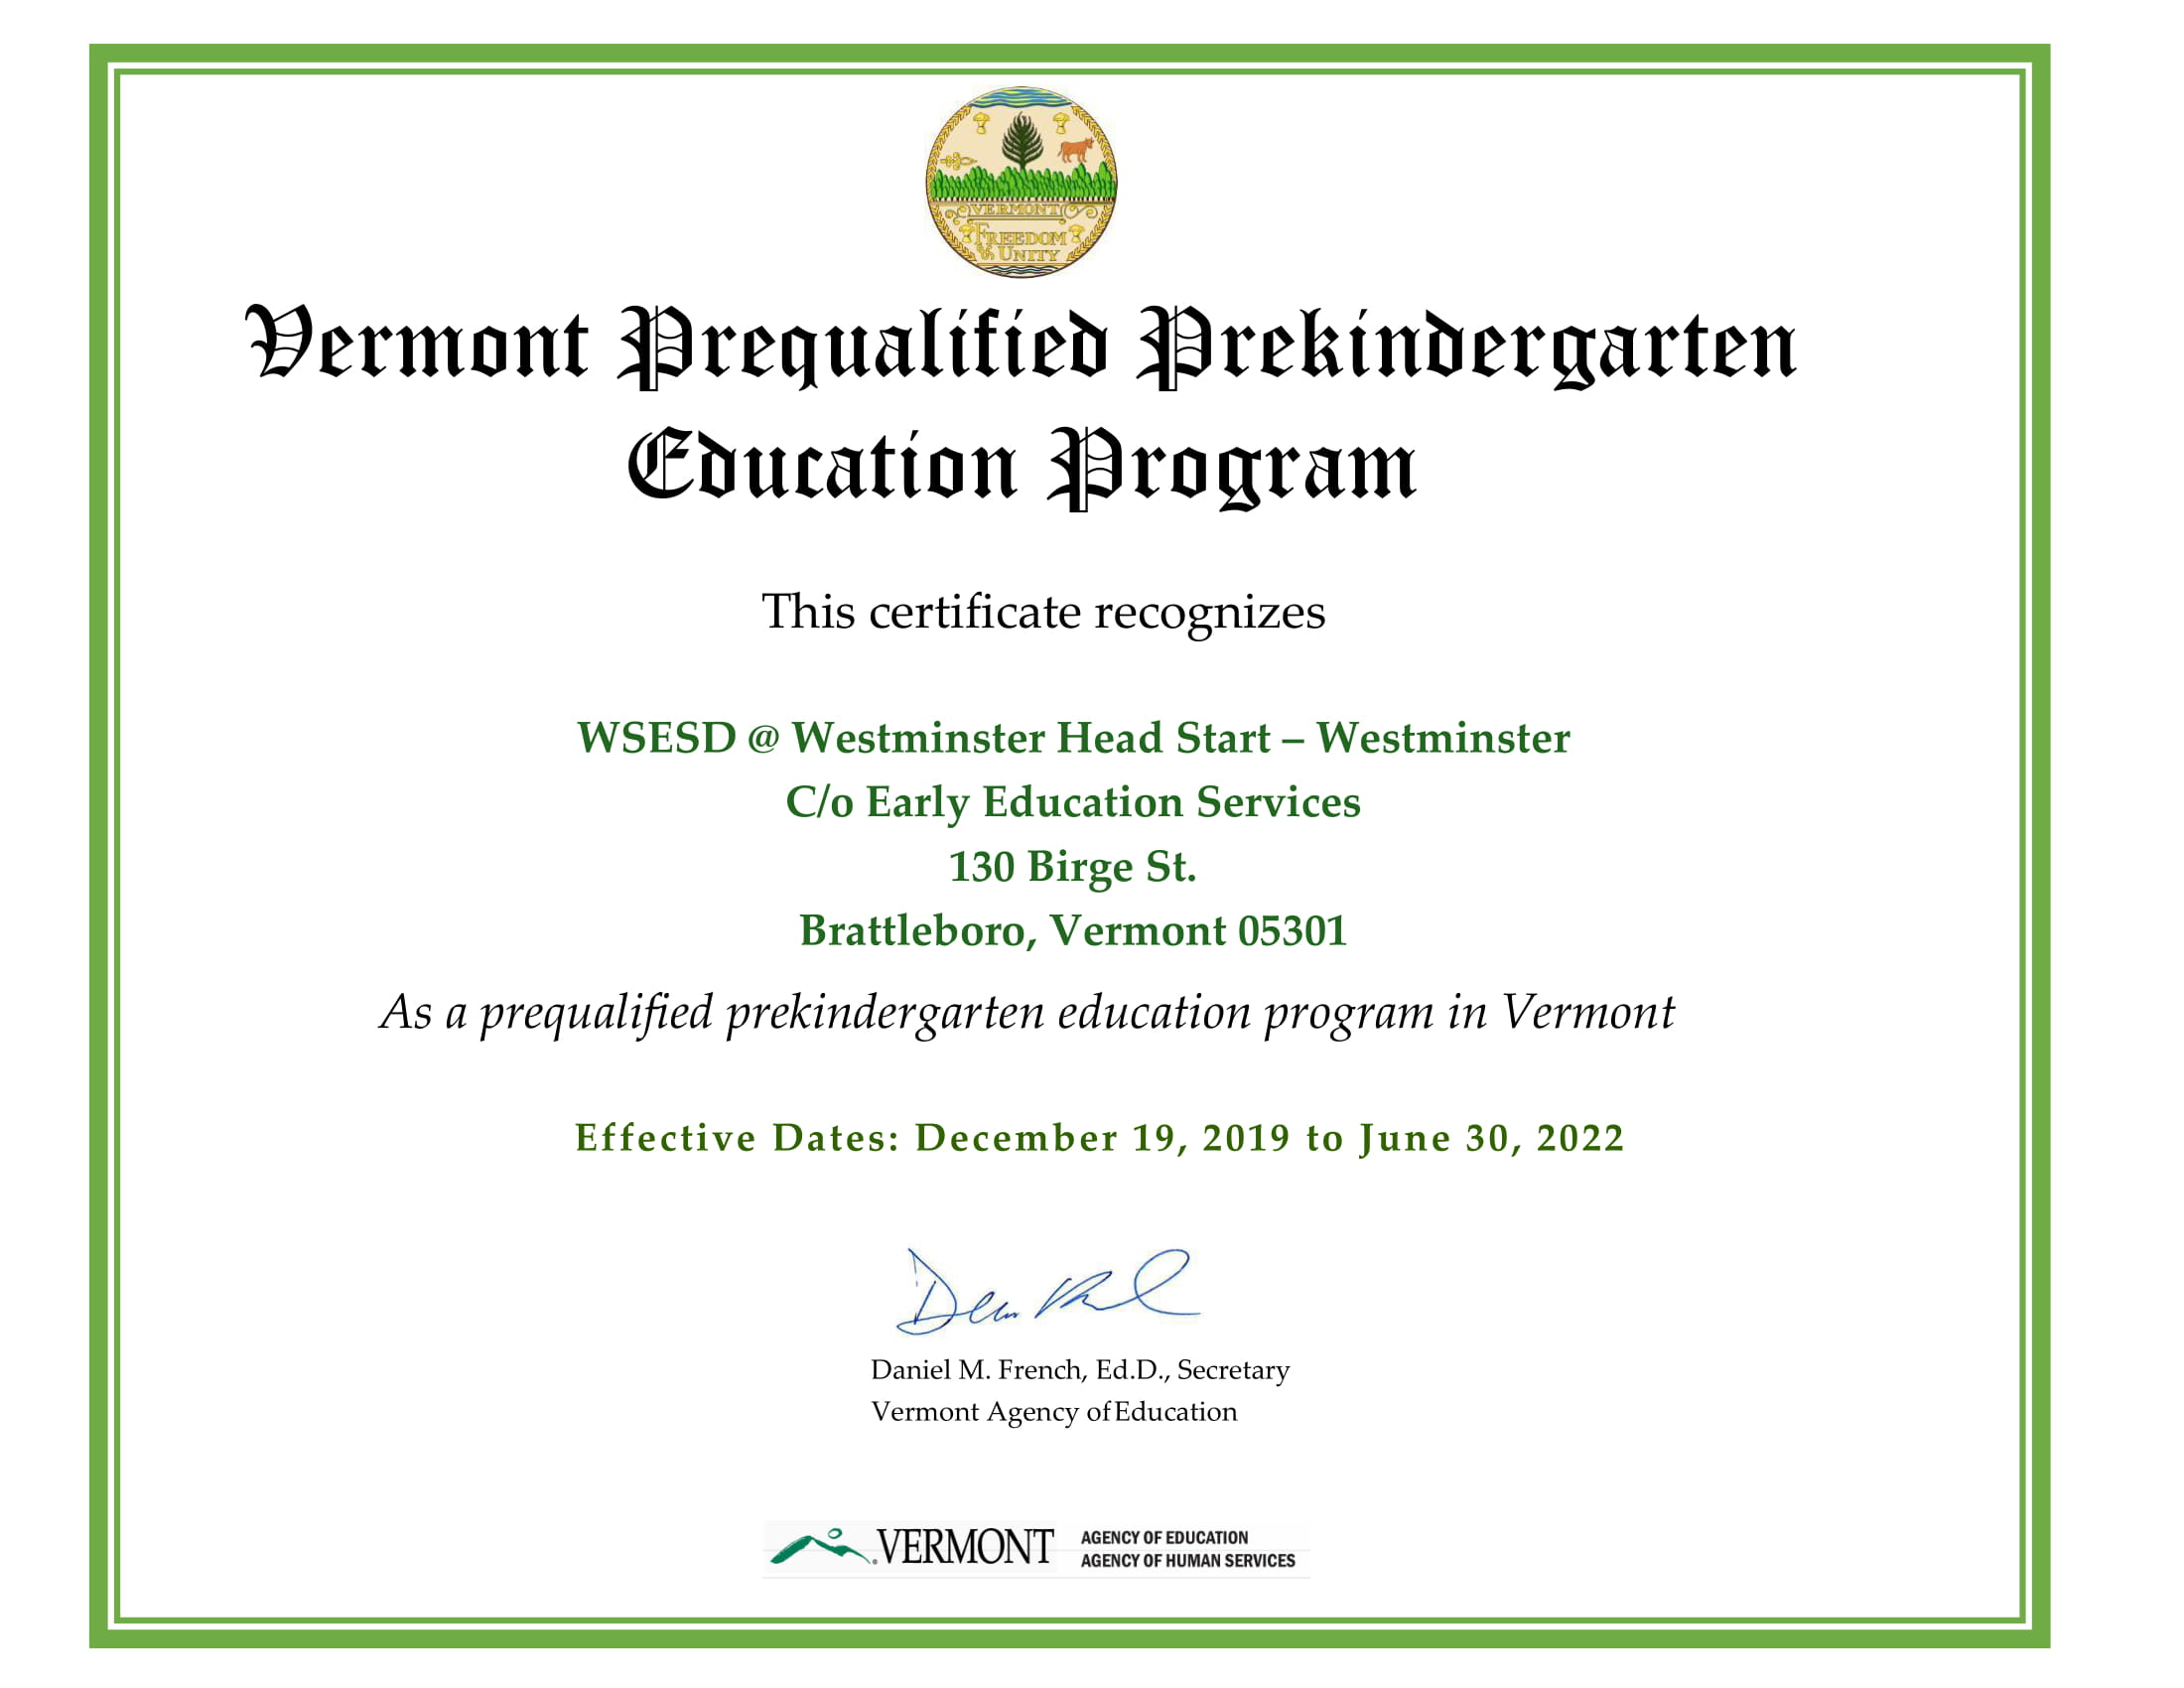 Approval WSESD @ Westminster Head Start - Westminster Certificate 2019 (2)-1